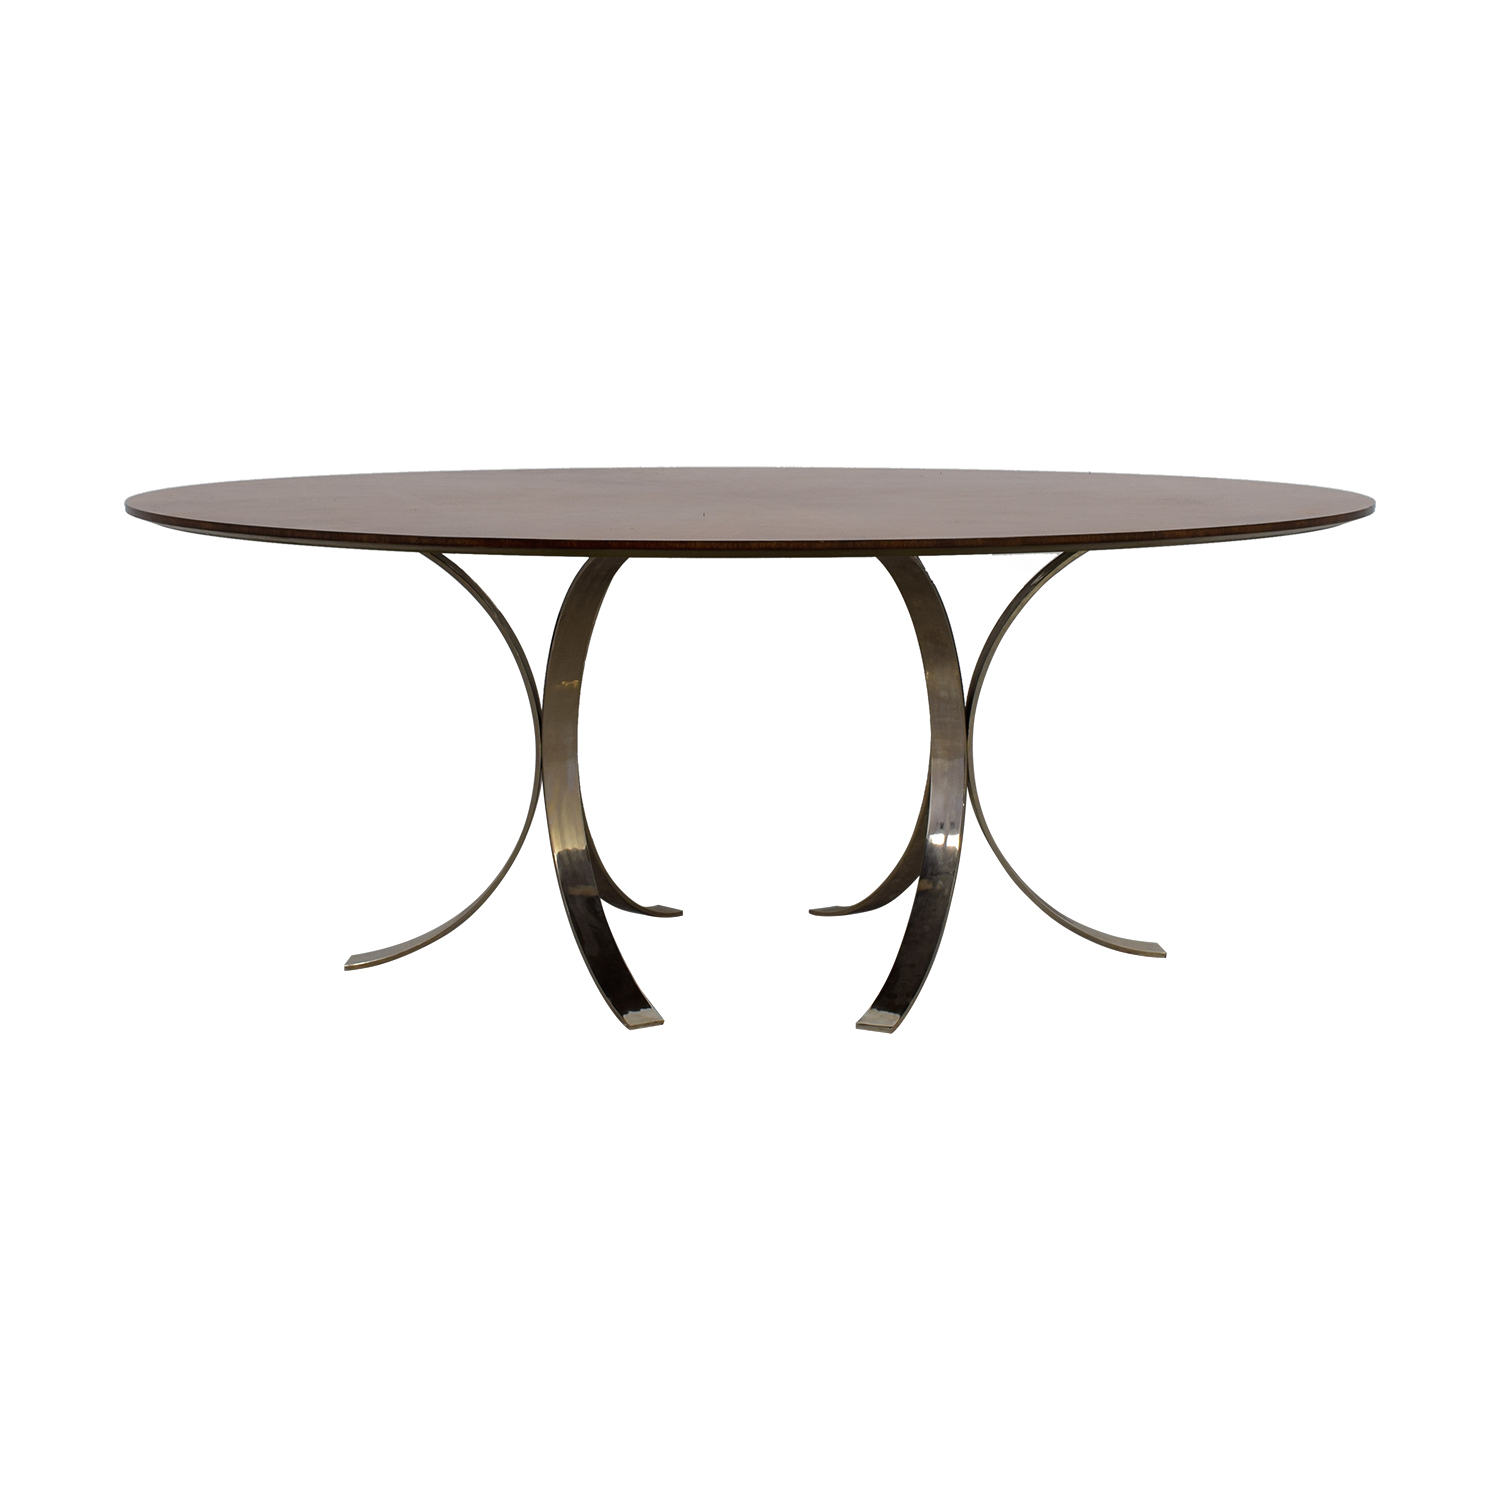 Jonathan Adler Jonathan Adler Oval Wood Table discount